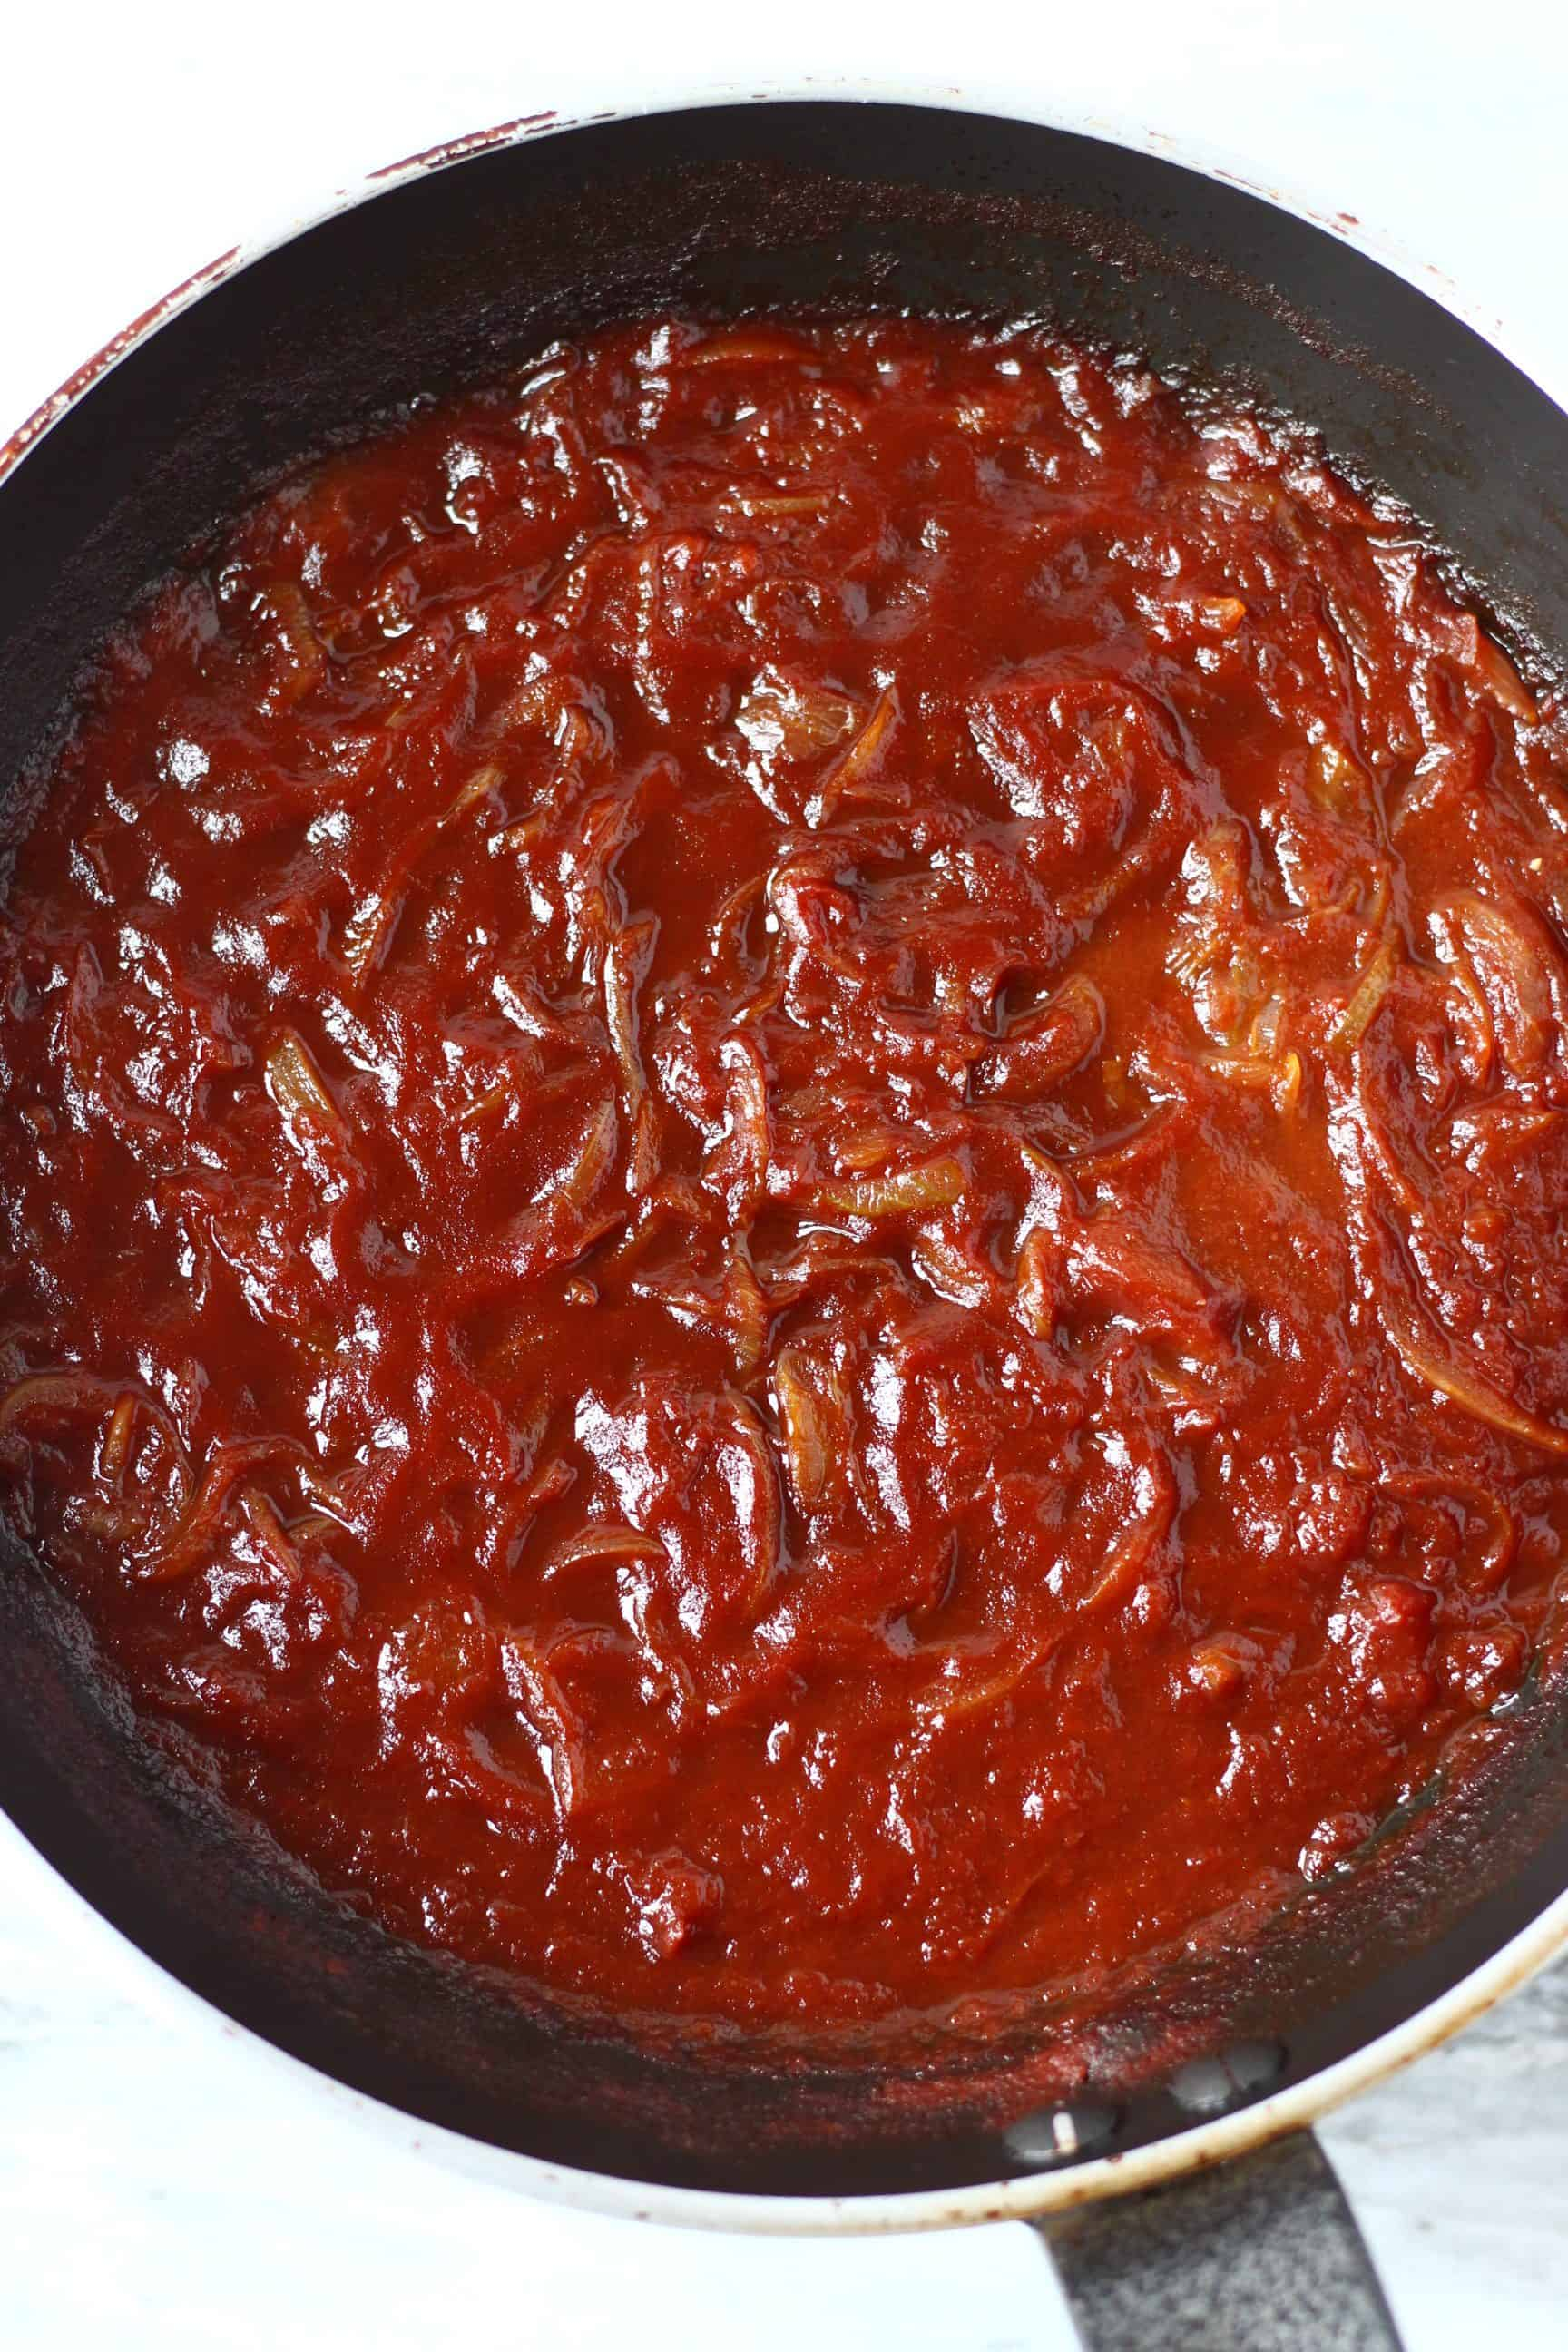 Onions with tomato sauce in a black frying pan against a marble background